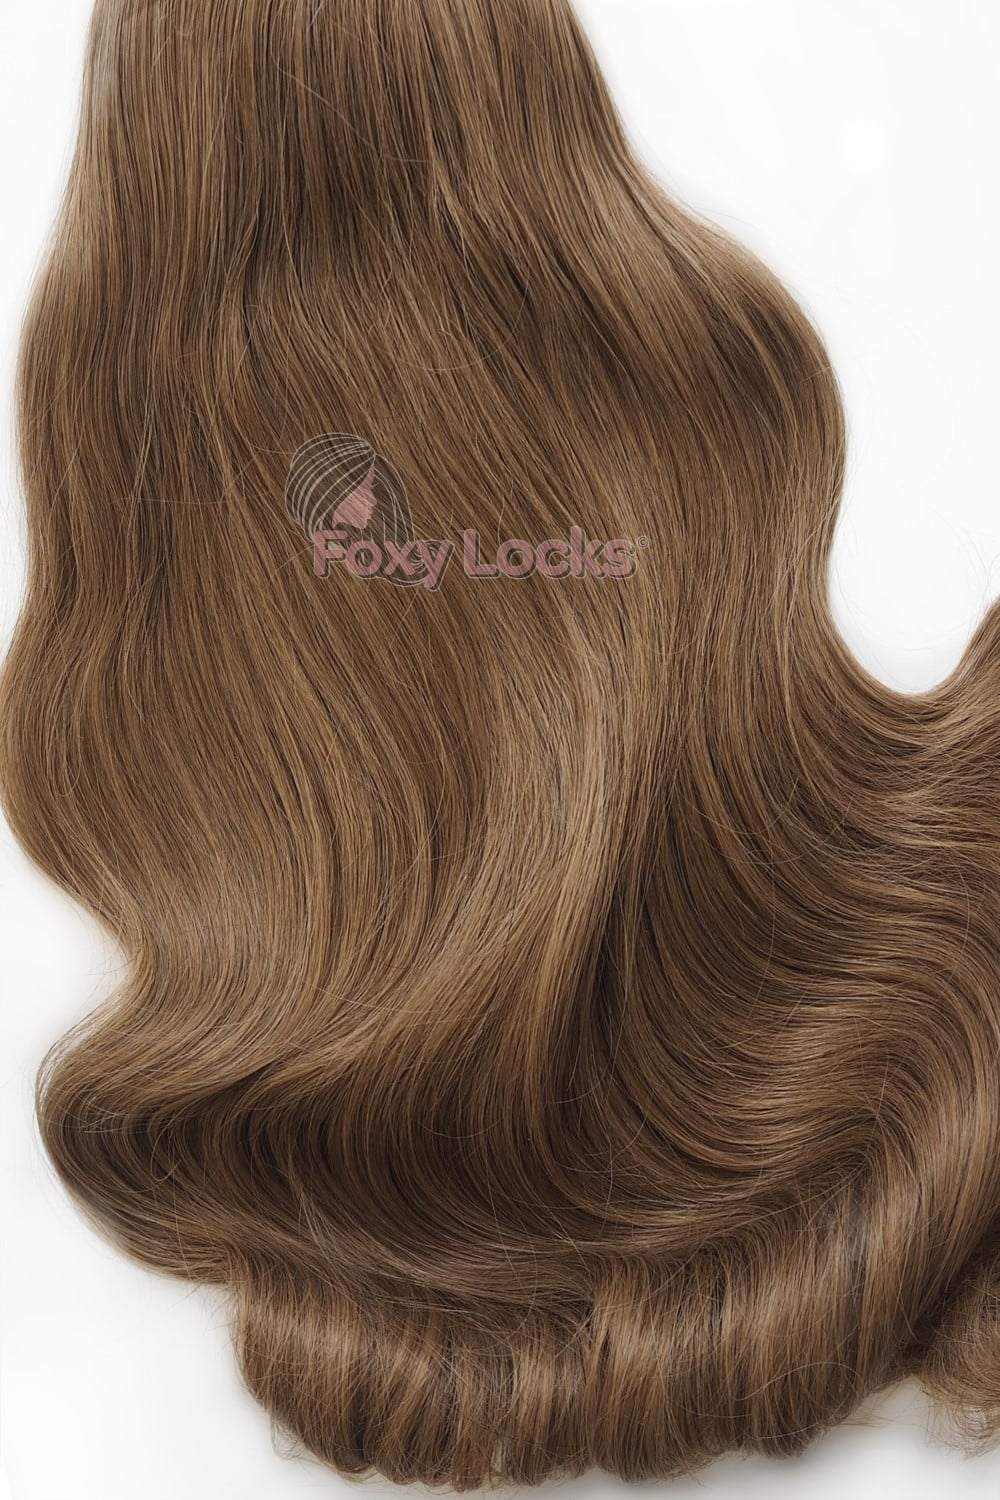 Sunkissed Brown 8 Deluxe 20 Clip In Human Hair Extensions 165g